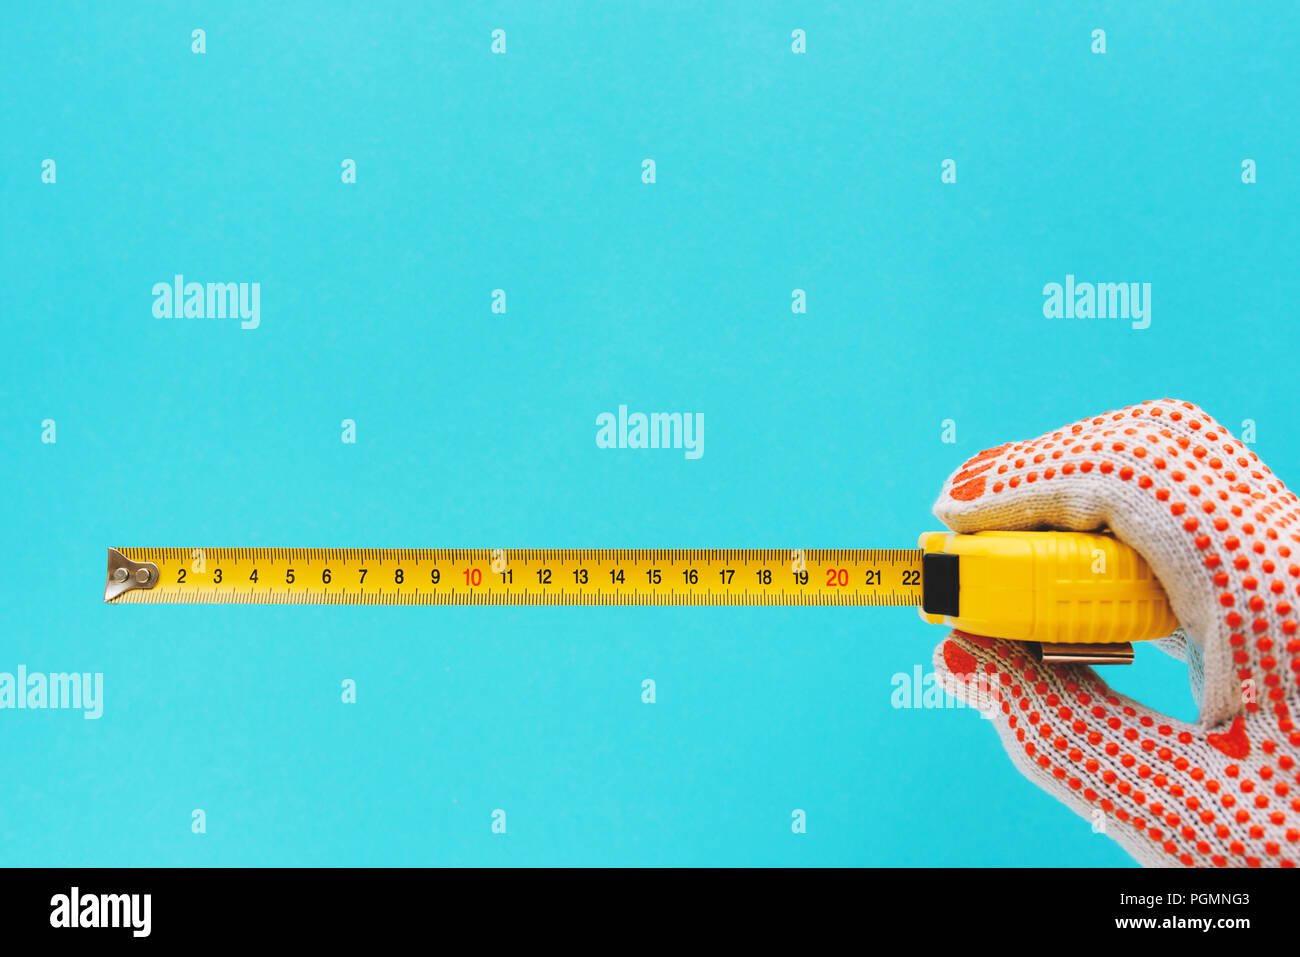 Handyman measuring size with tape meter, hand with tool isolated on blue background - Stock Image